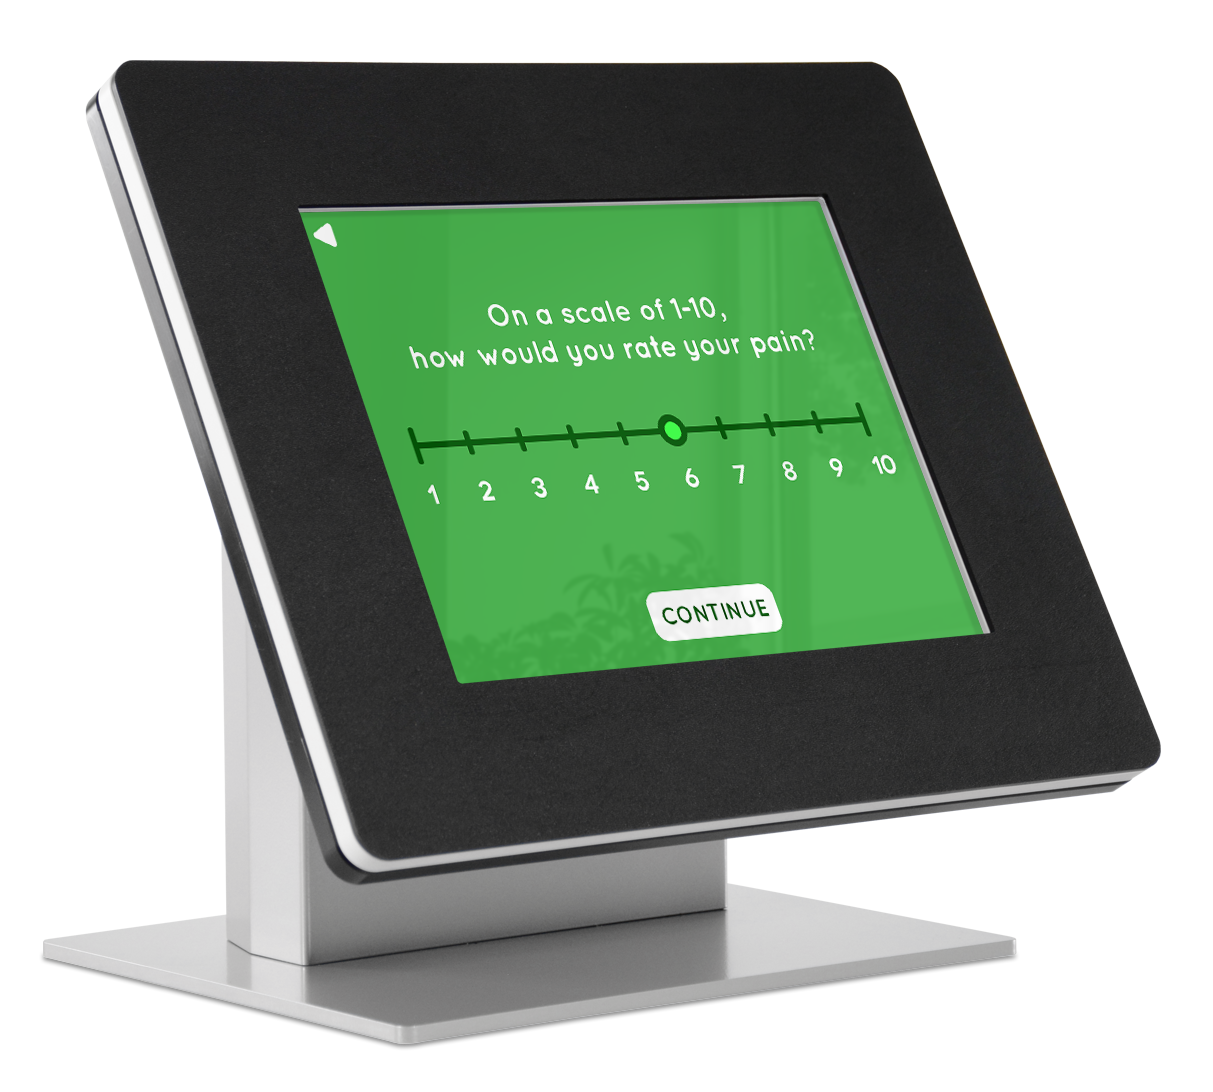 Use a kiosk to offer health surveys to patients while they wait.